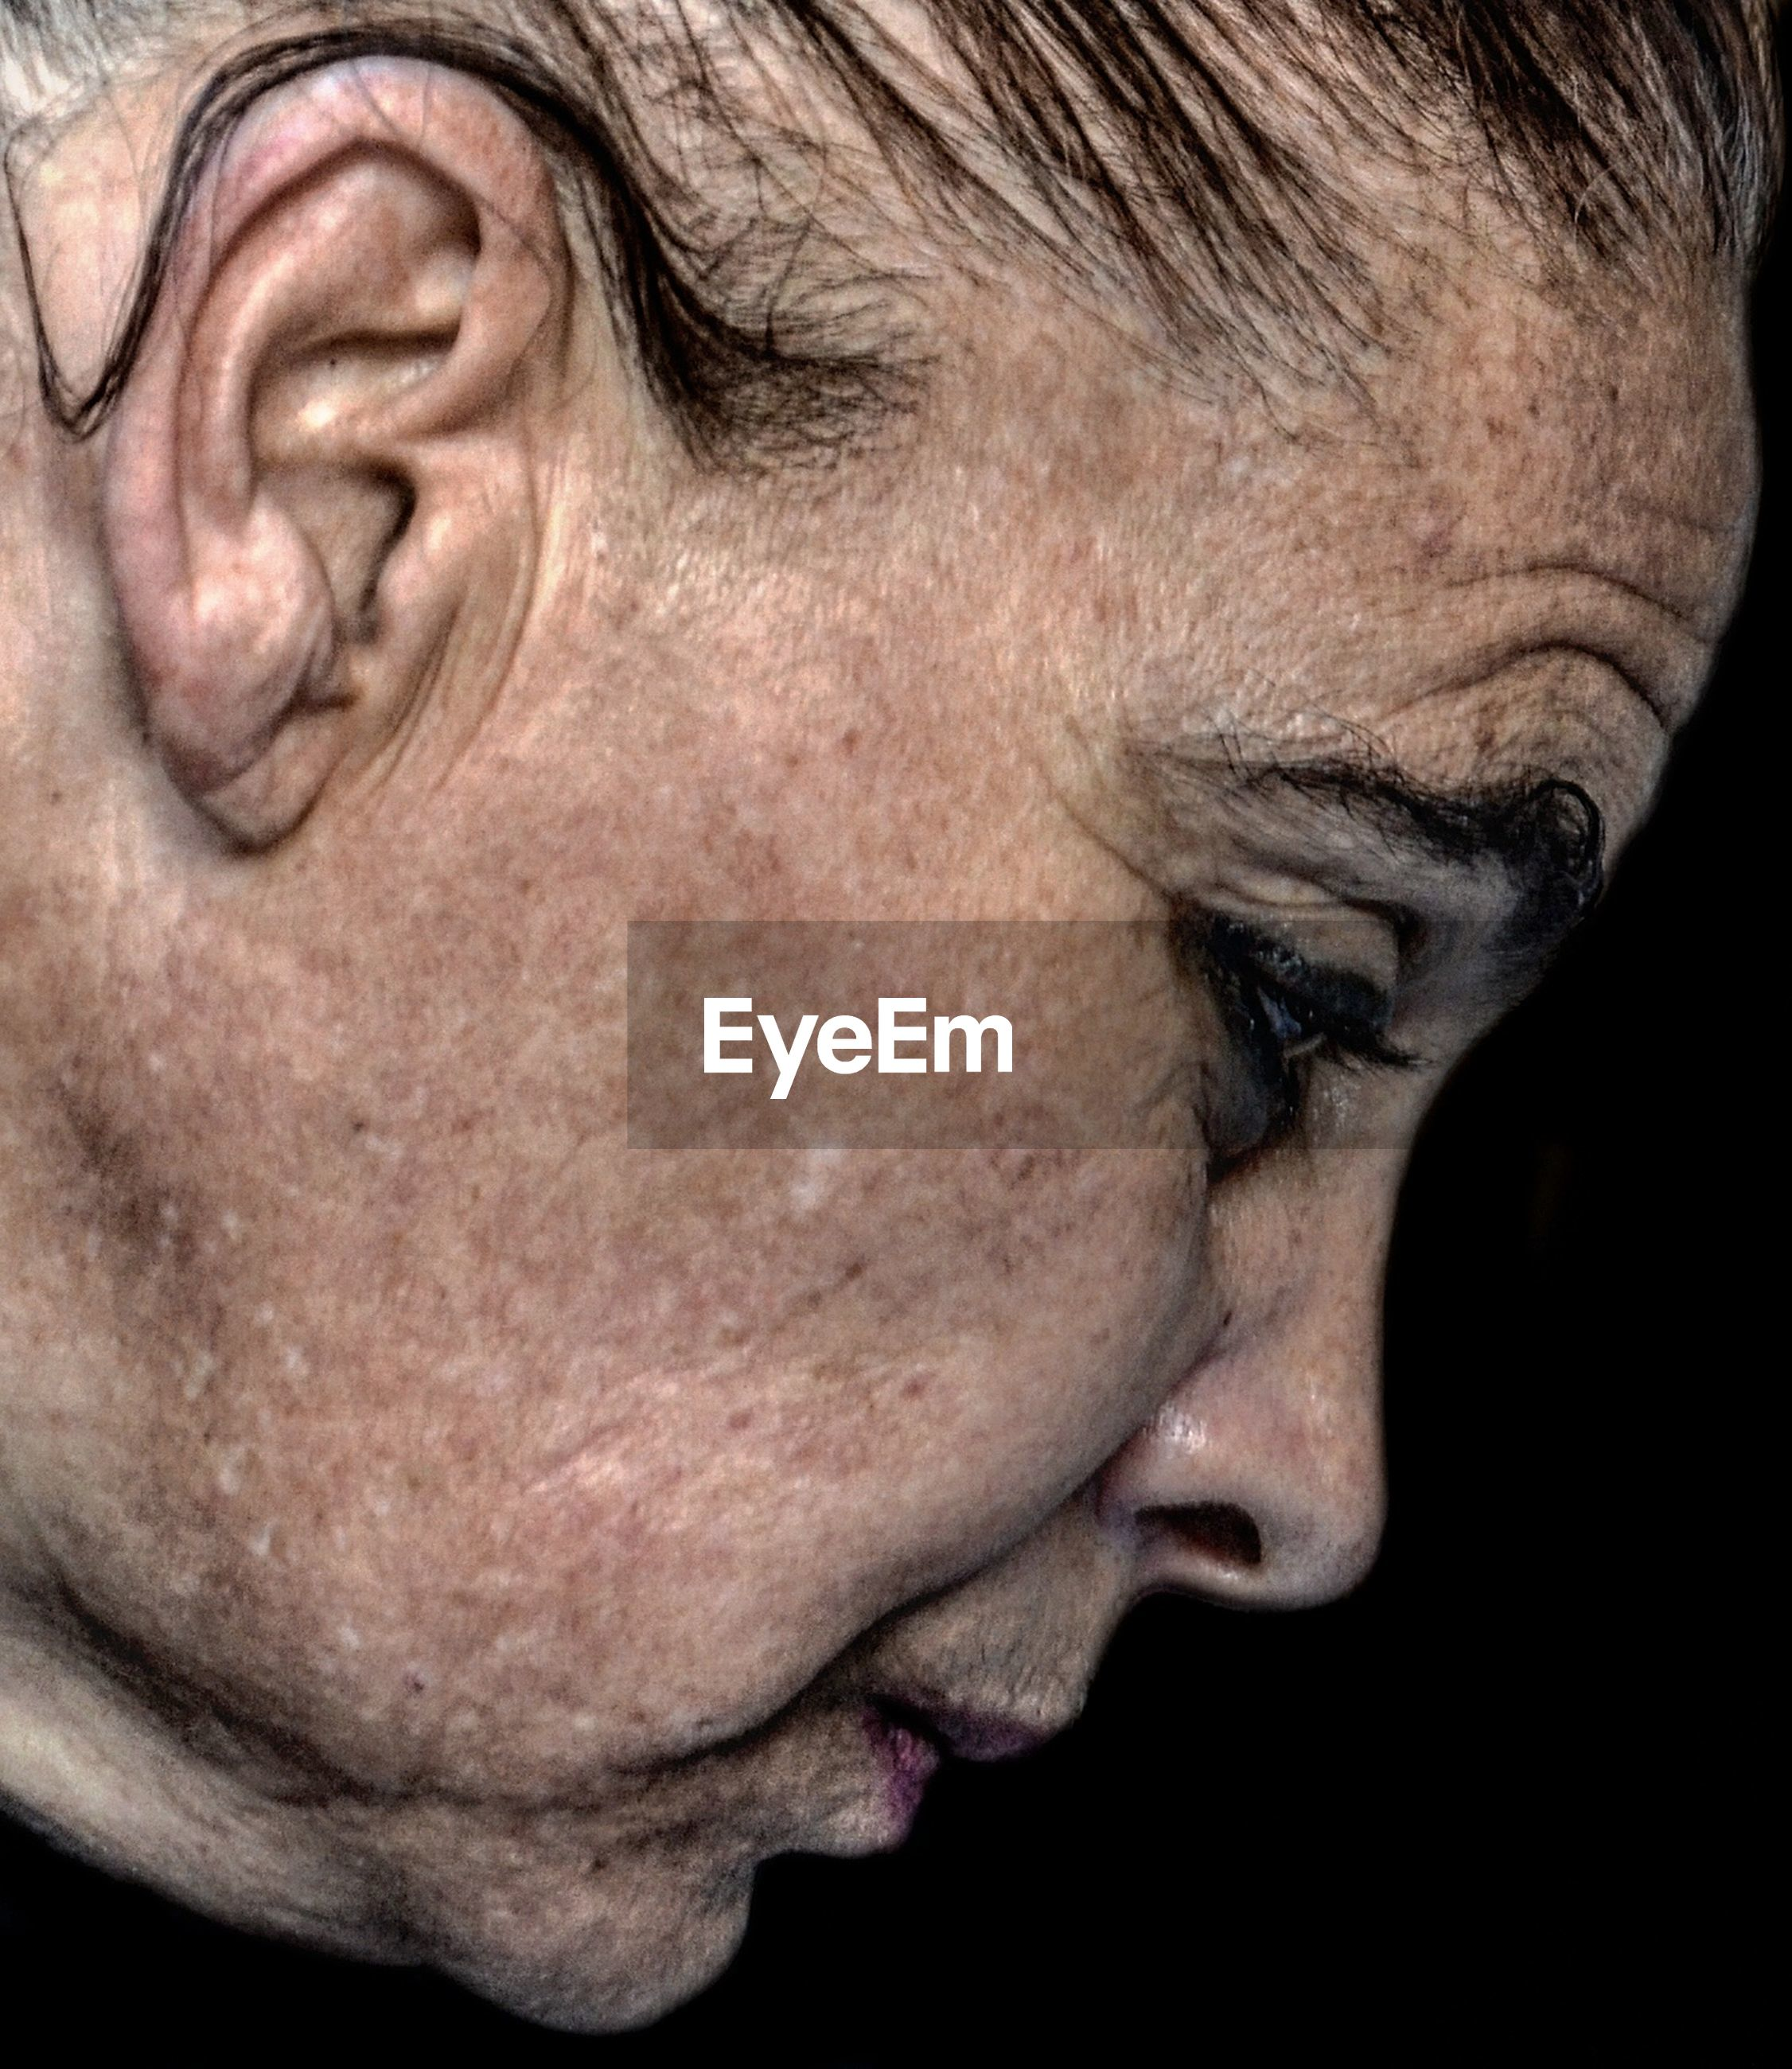 human face, eyes closed, human body part, close-up, one person, depression - sadness, adult, real people, grief, adults only, pain, people, young adult, one man only, only men, human hand, day